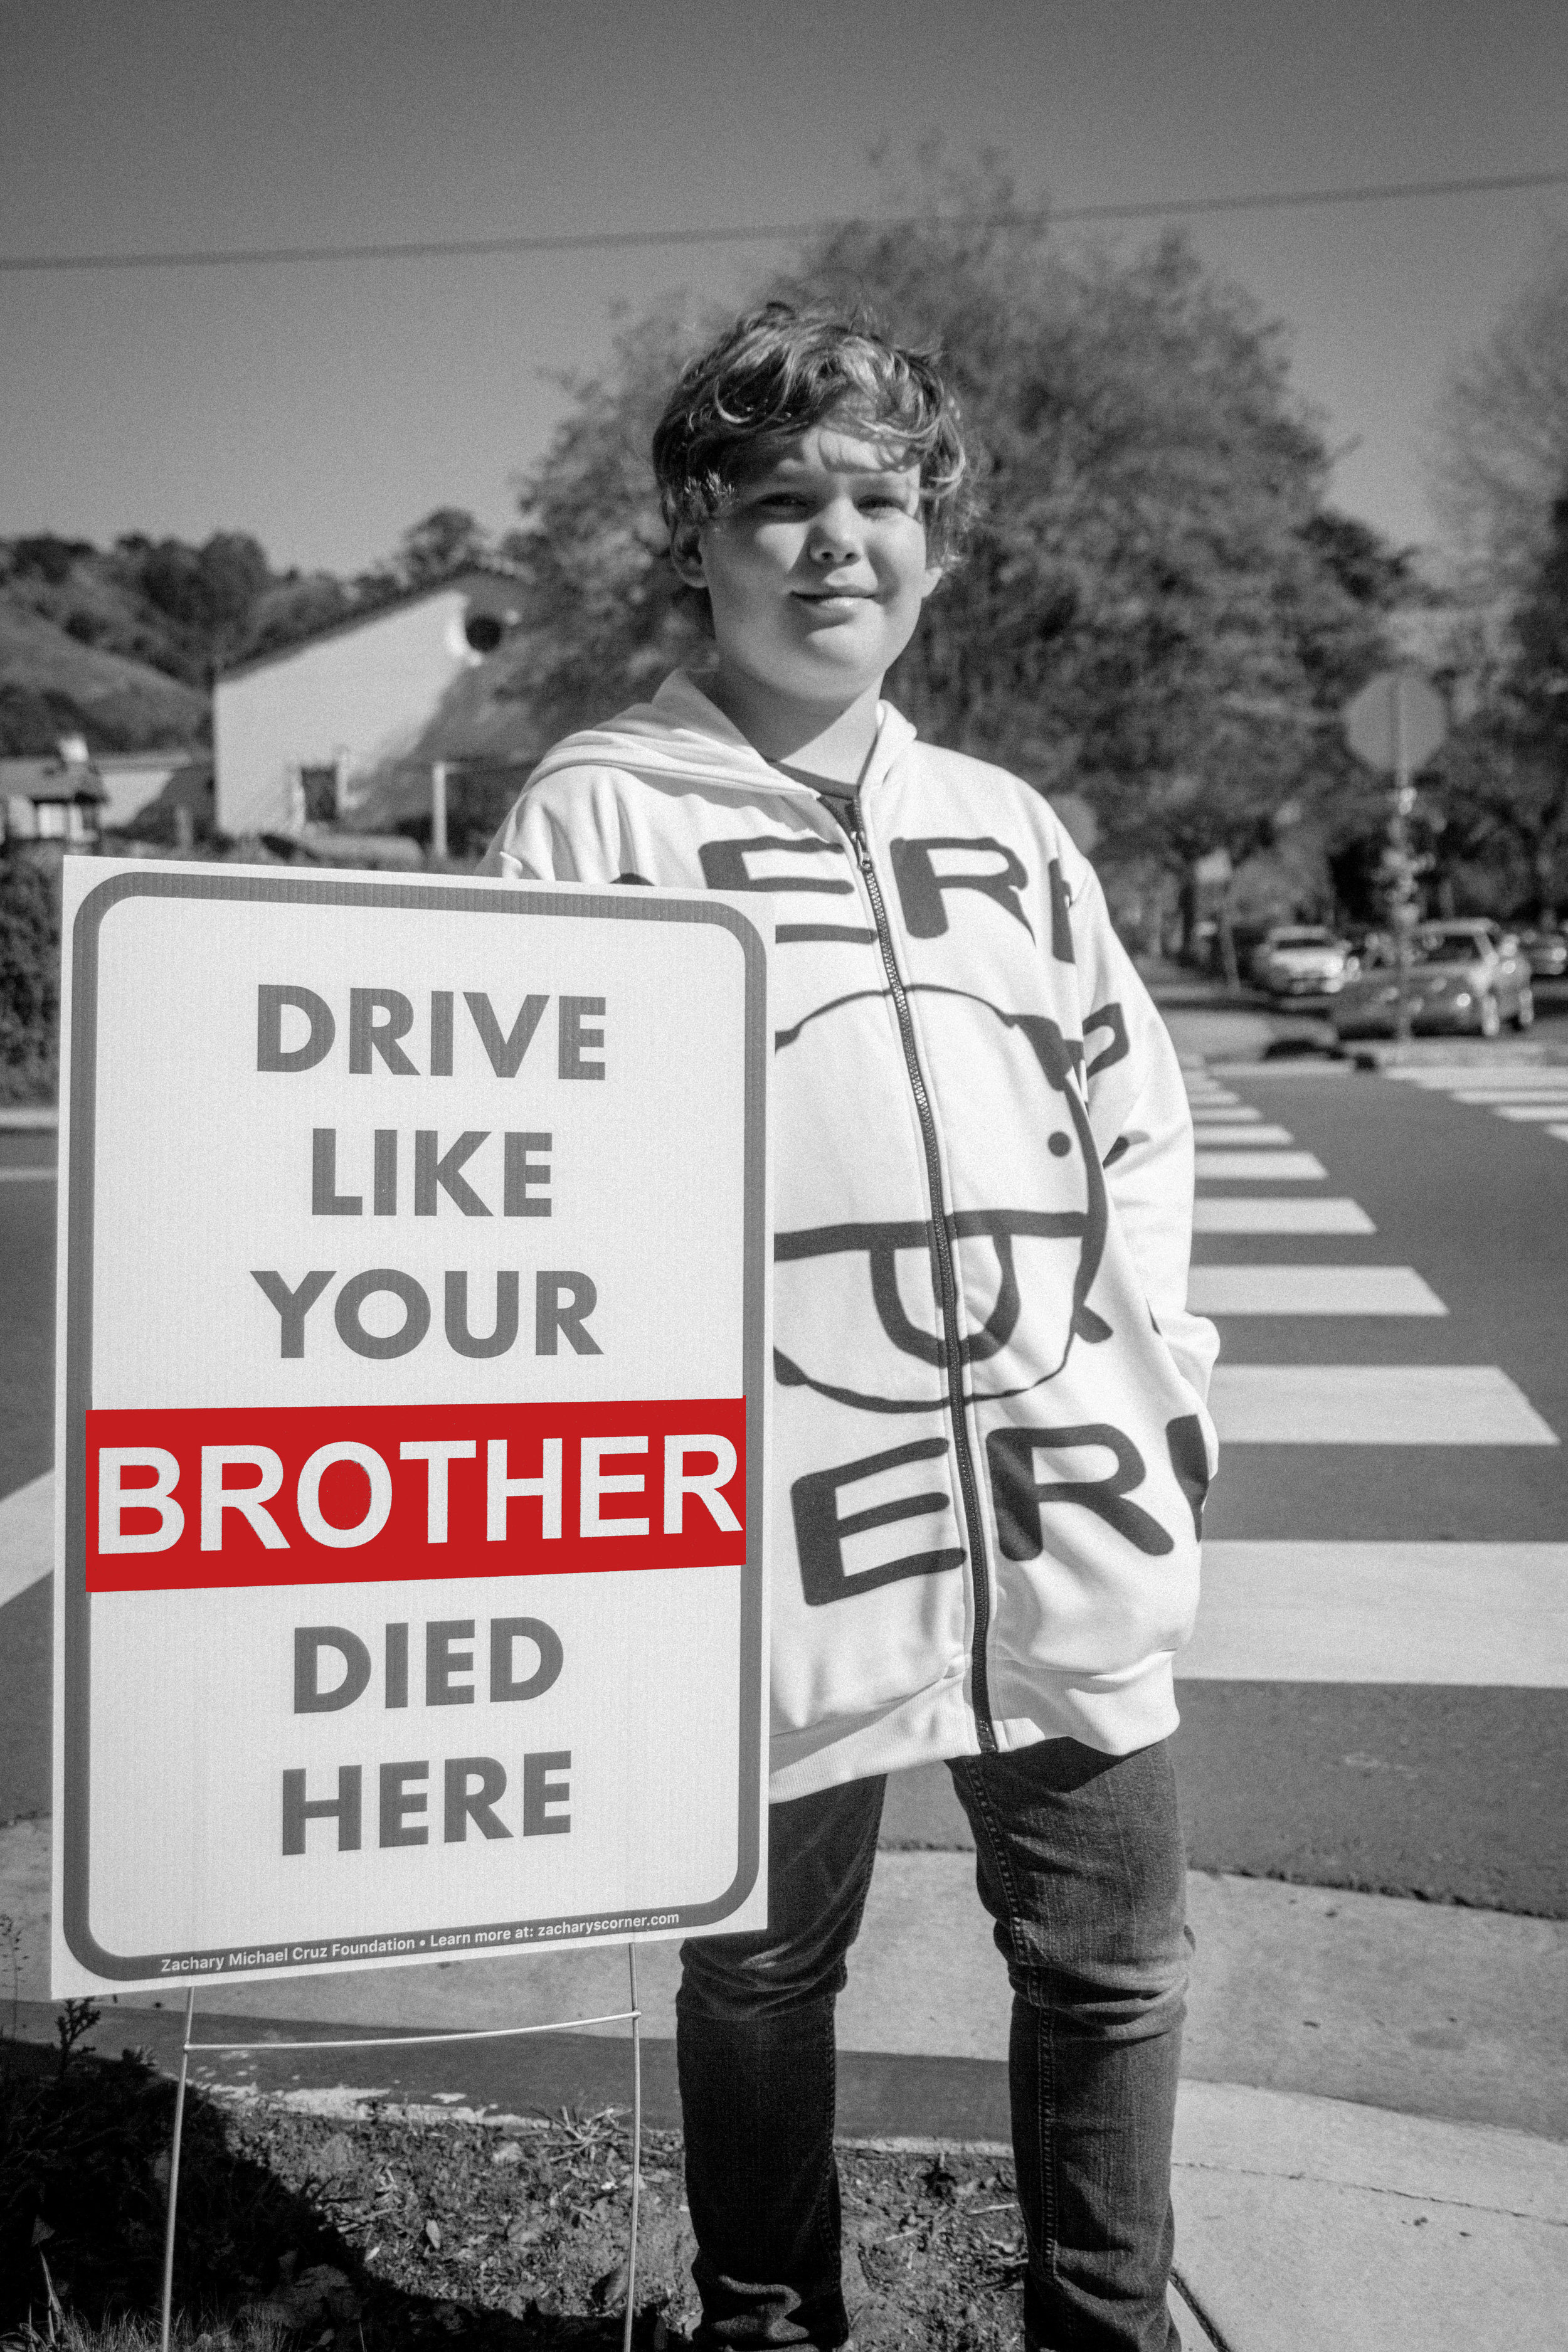 MILES CRUZ, ZACHARY'S BROTHER, ASKS YOU TO DRIVE LIKE YOUR BROTHER DIED HERE. HIS DID.